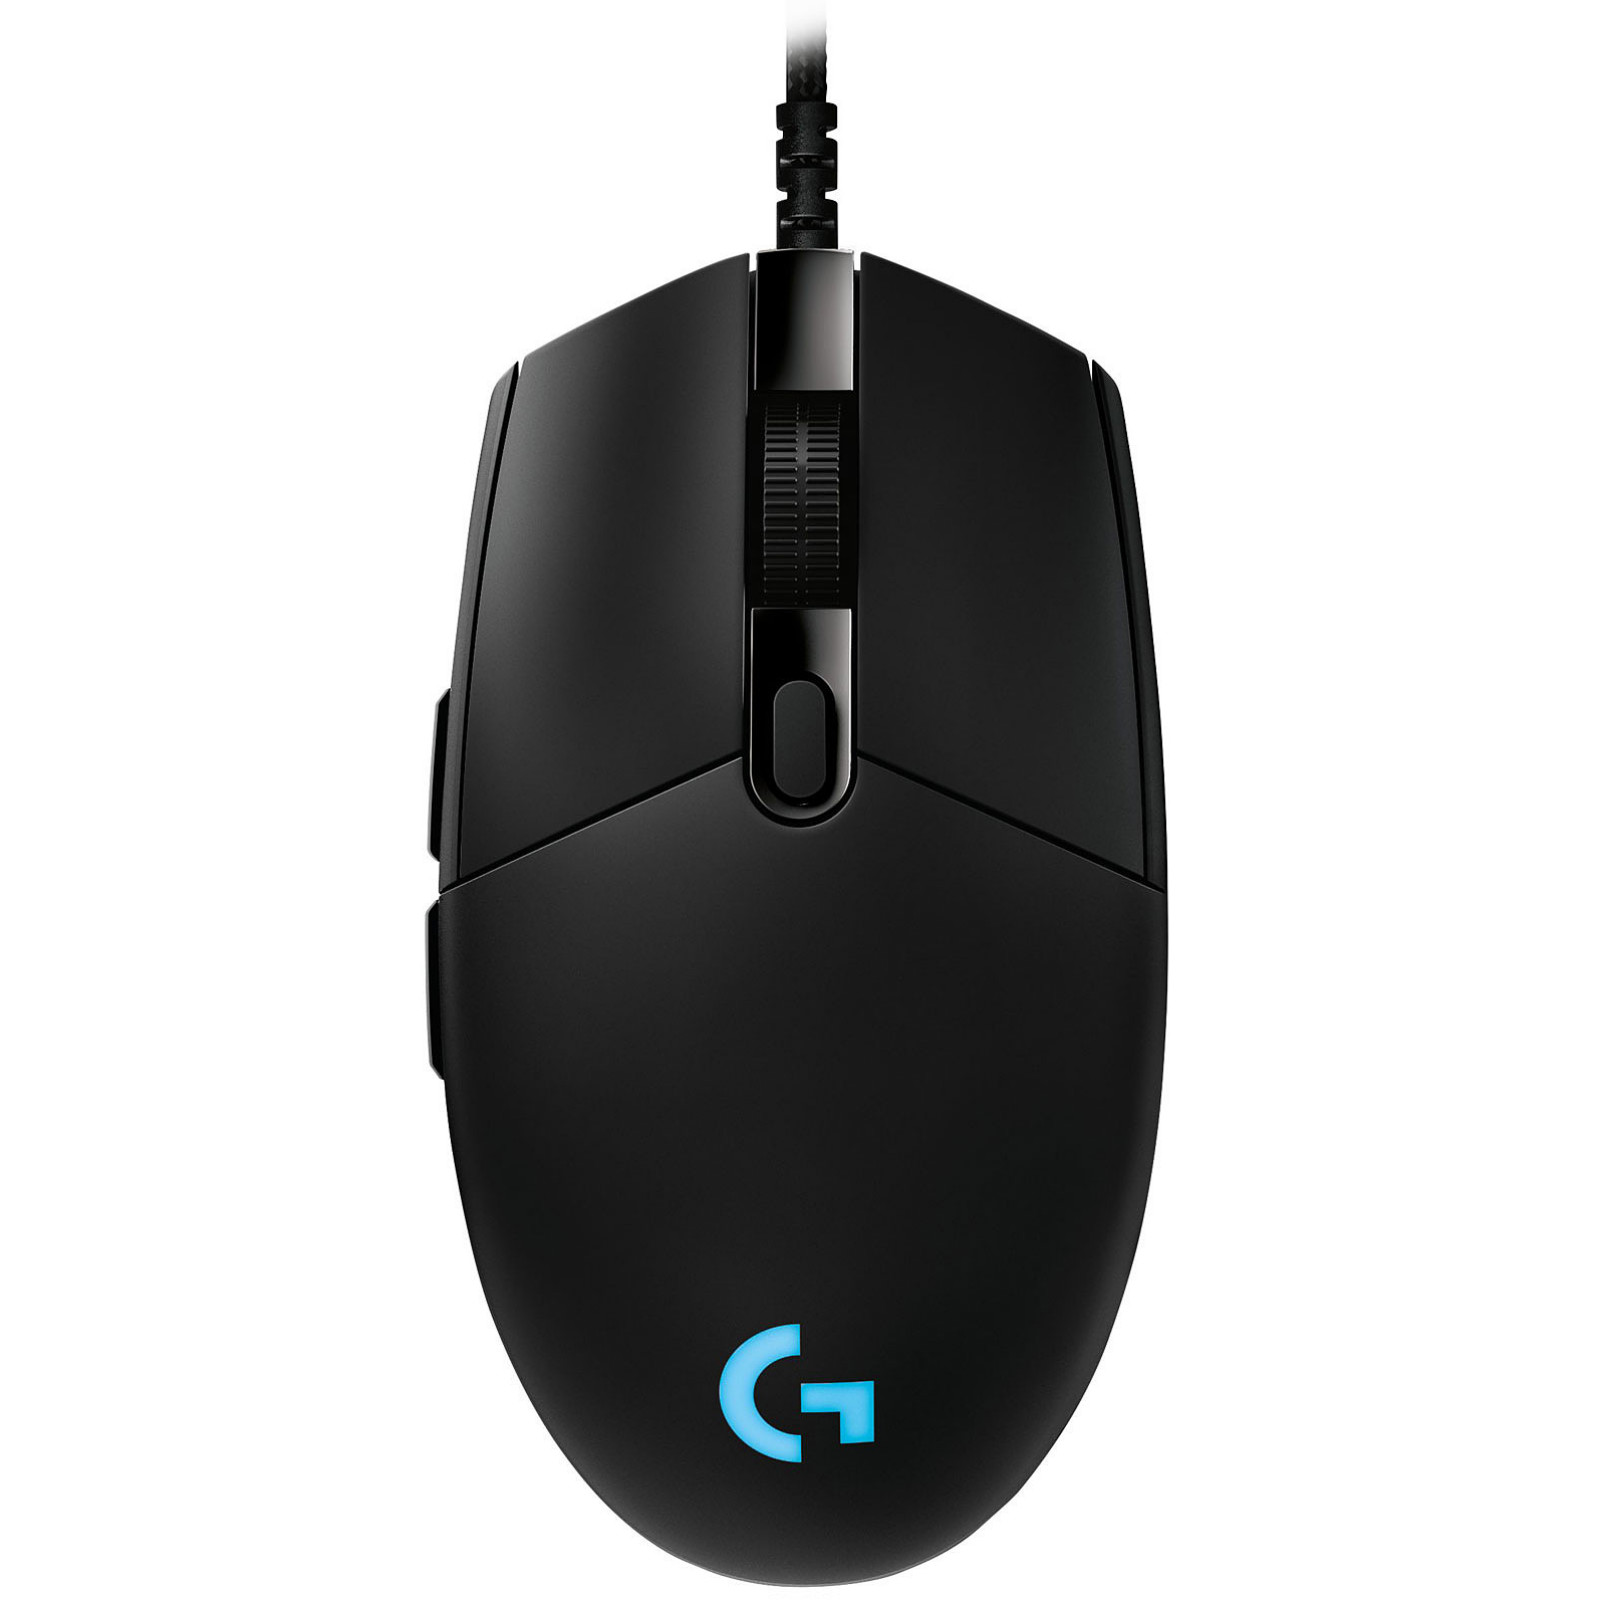 ef6a02bae57 Buy the Logitech G Pro Hero RGB Wired Gaming Mouse ( 910-005442 ...